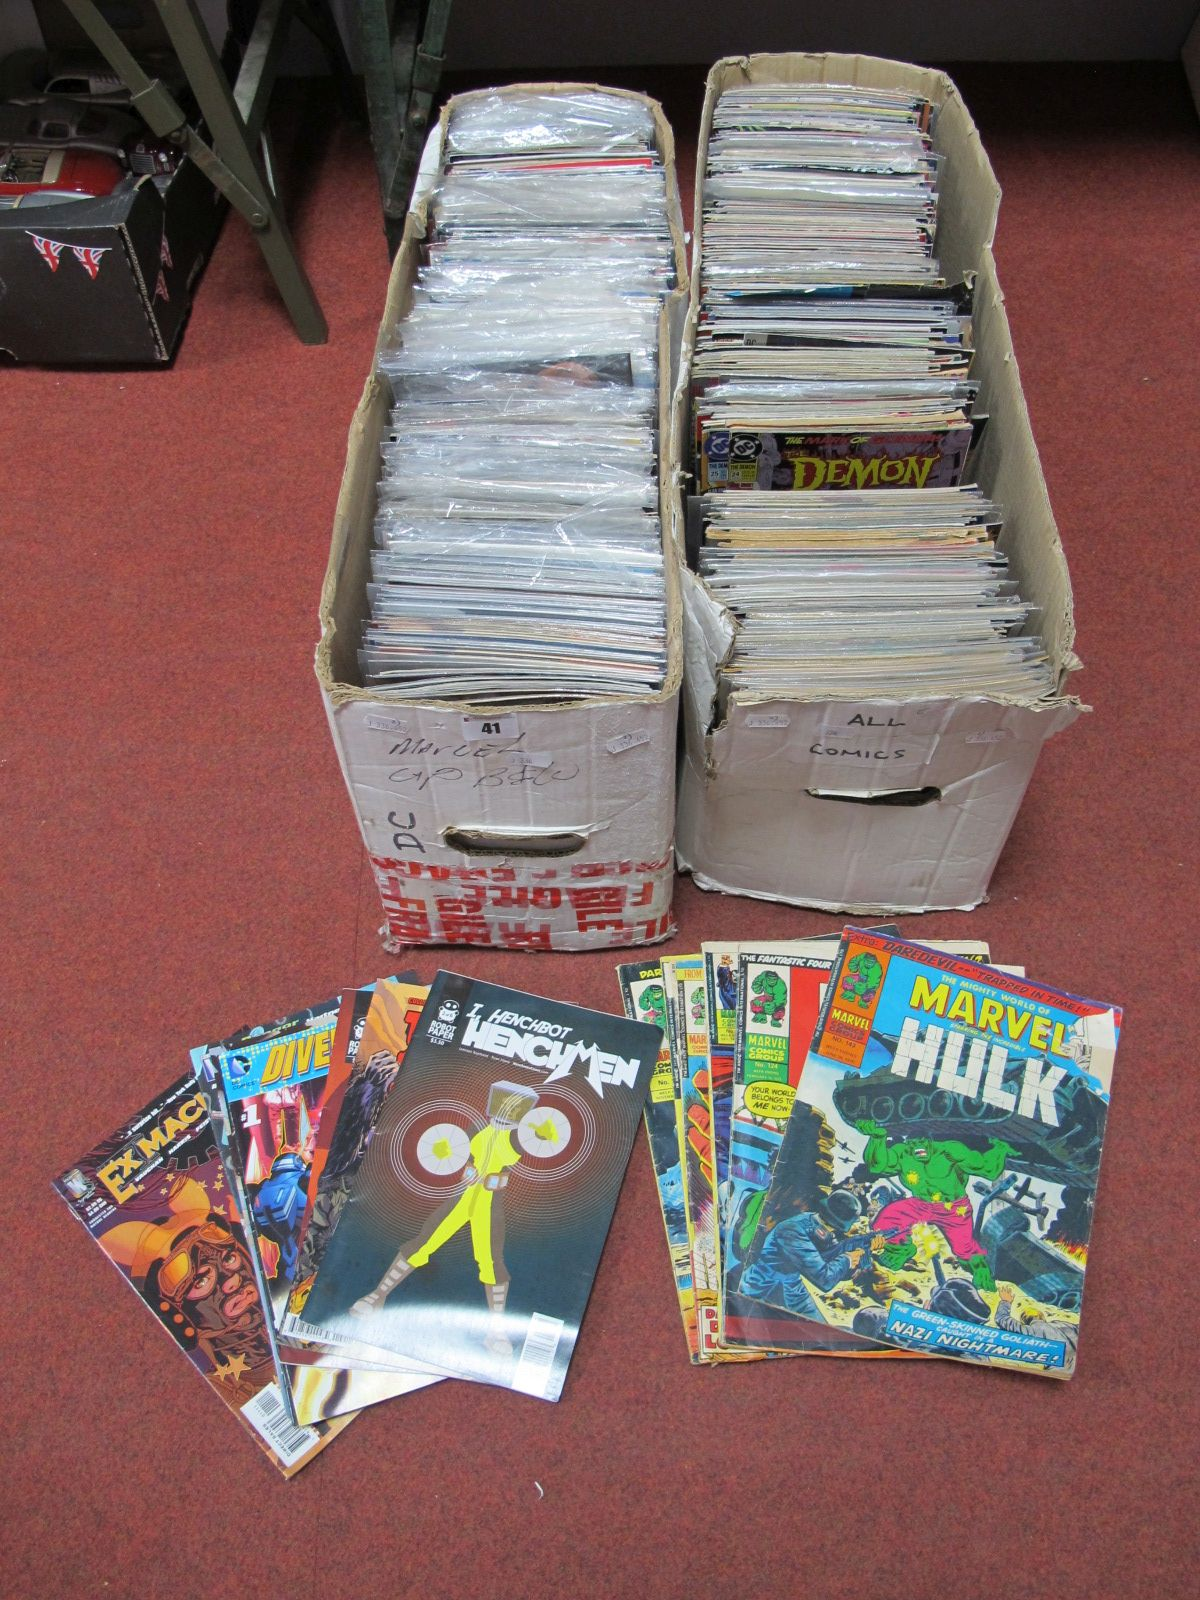 Lot 41 - In Excess of Six Hundred Comics, by Marvel, DC, Helix, IOW including New Talent Showcase,